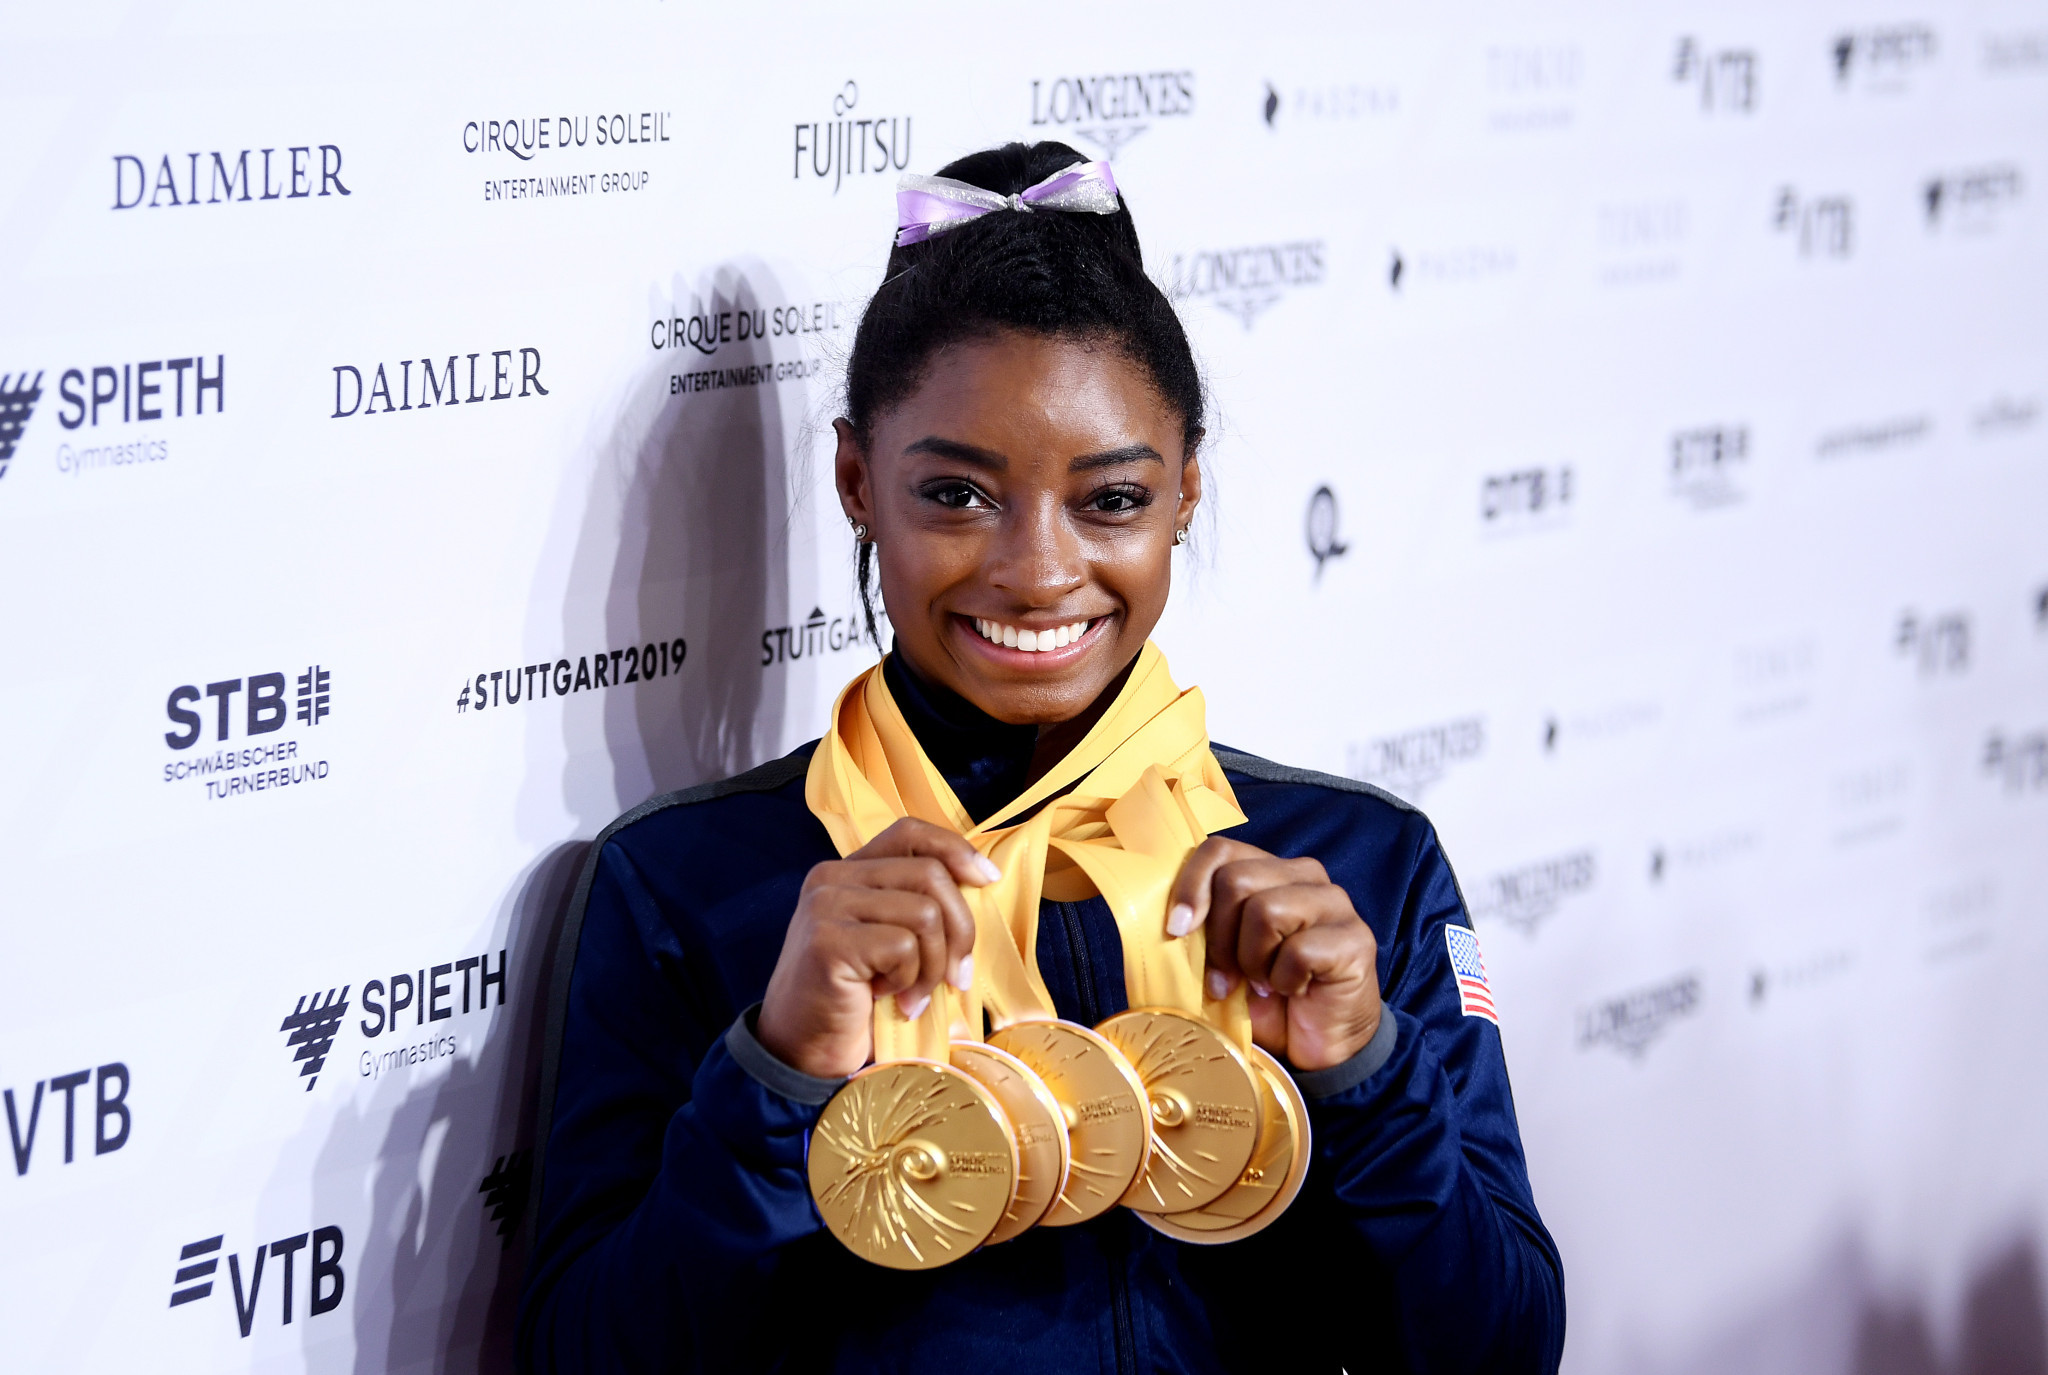 Biles would not want daughter to be part of USA Gymnastics system